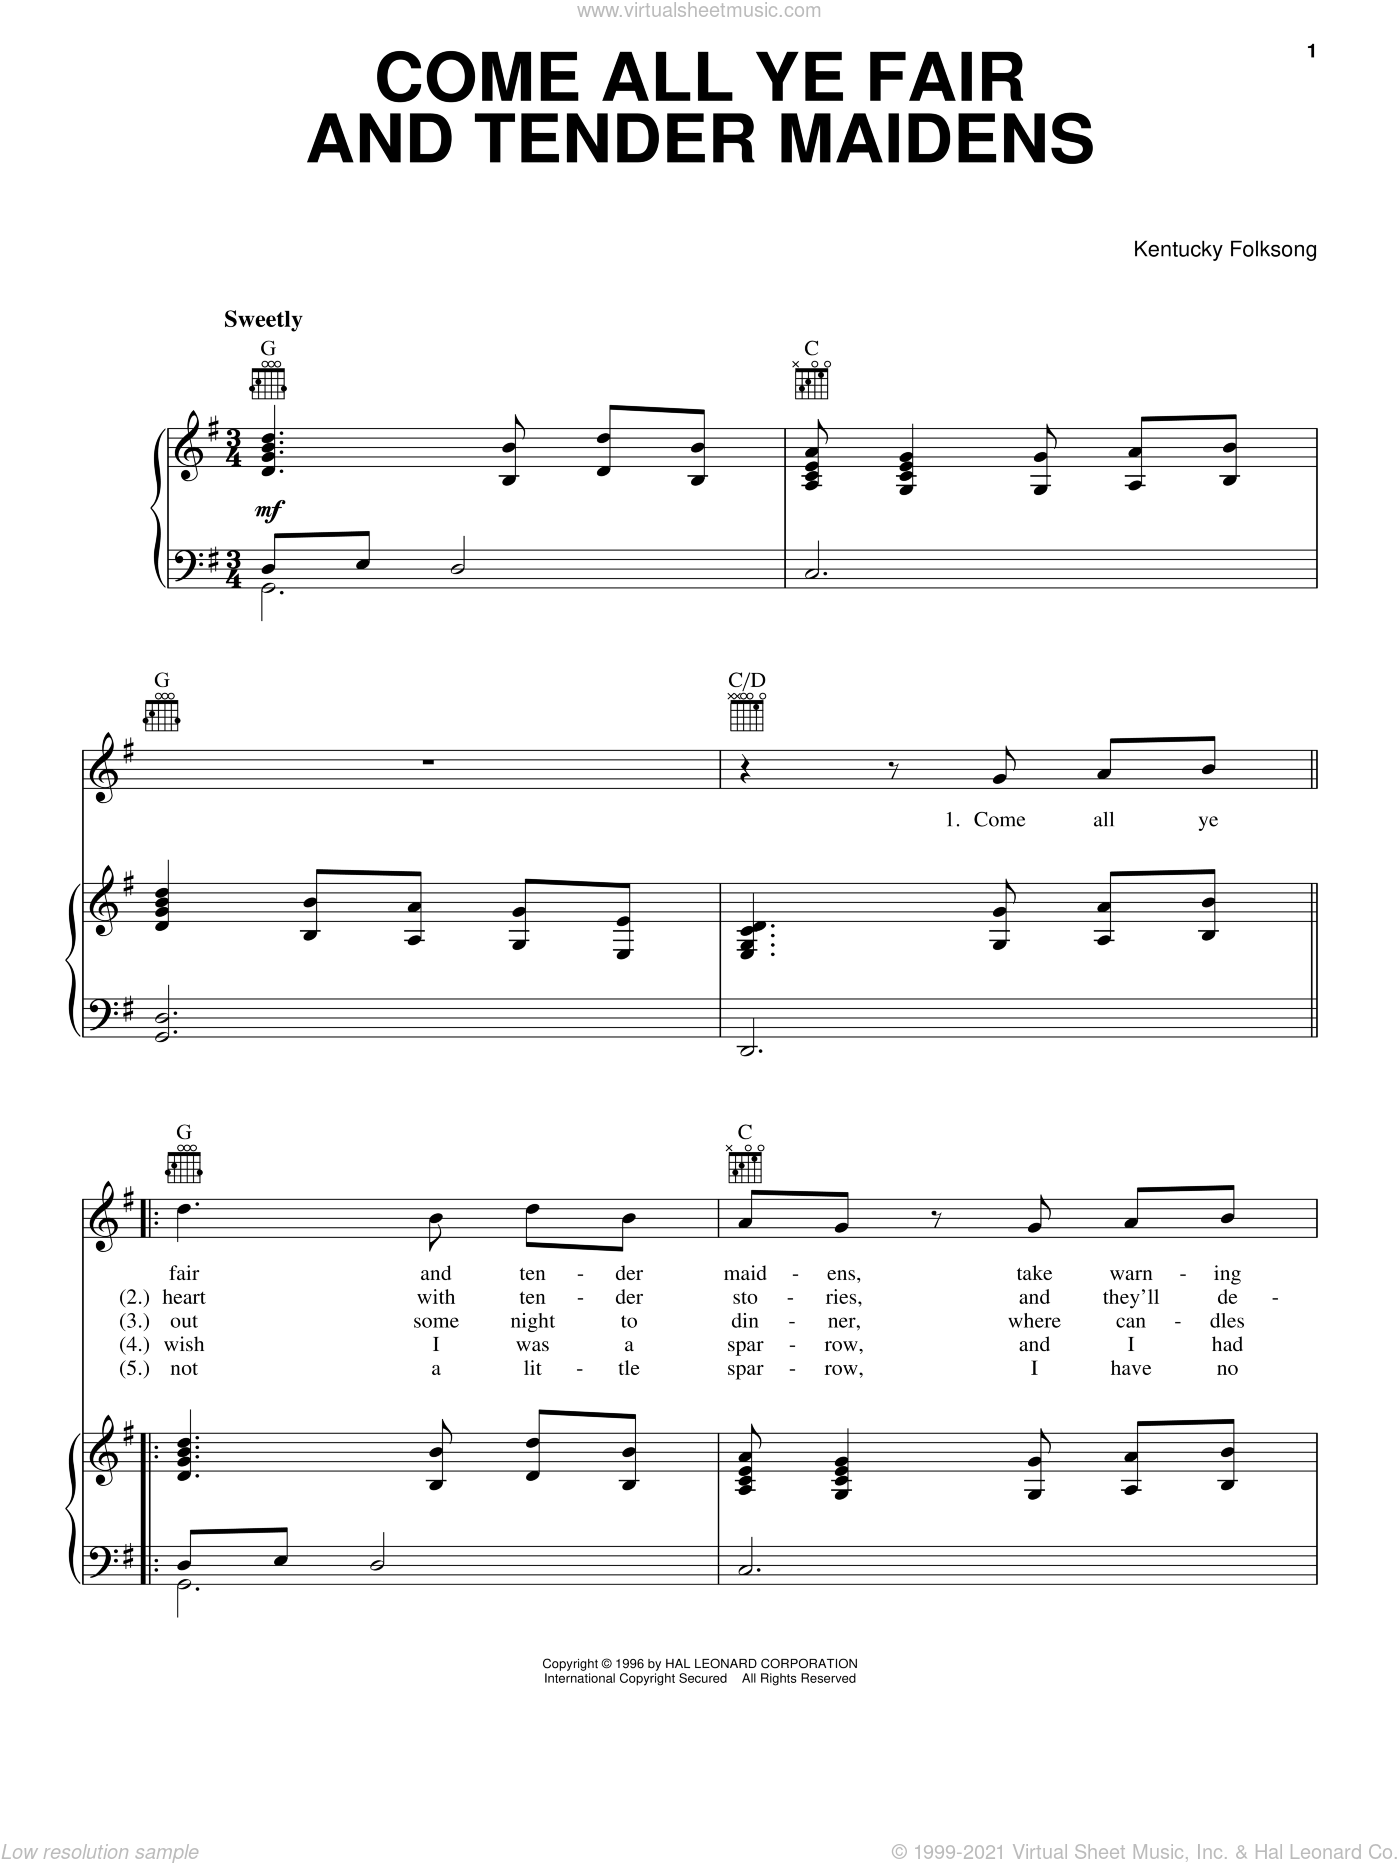 Come All Ye Fair And Tender Maidens sheet music for voice, piano or guitar by Kentucky Folksong, intermediate skill level